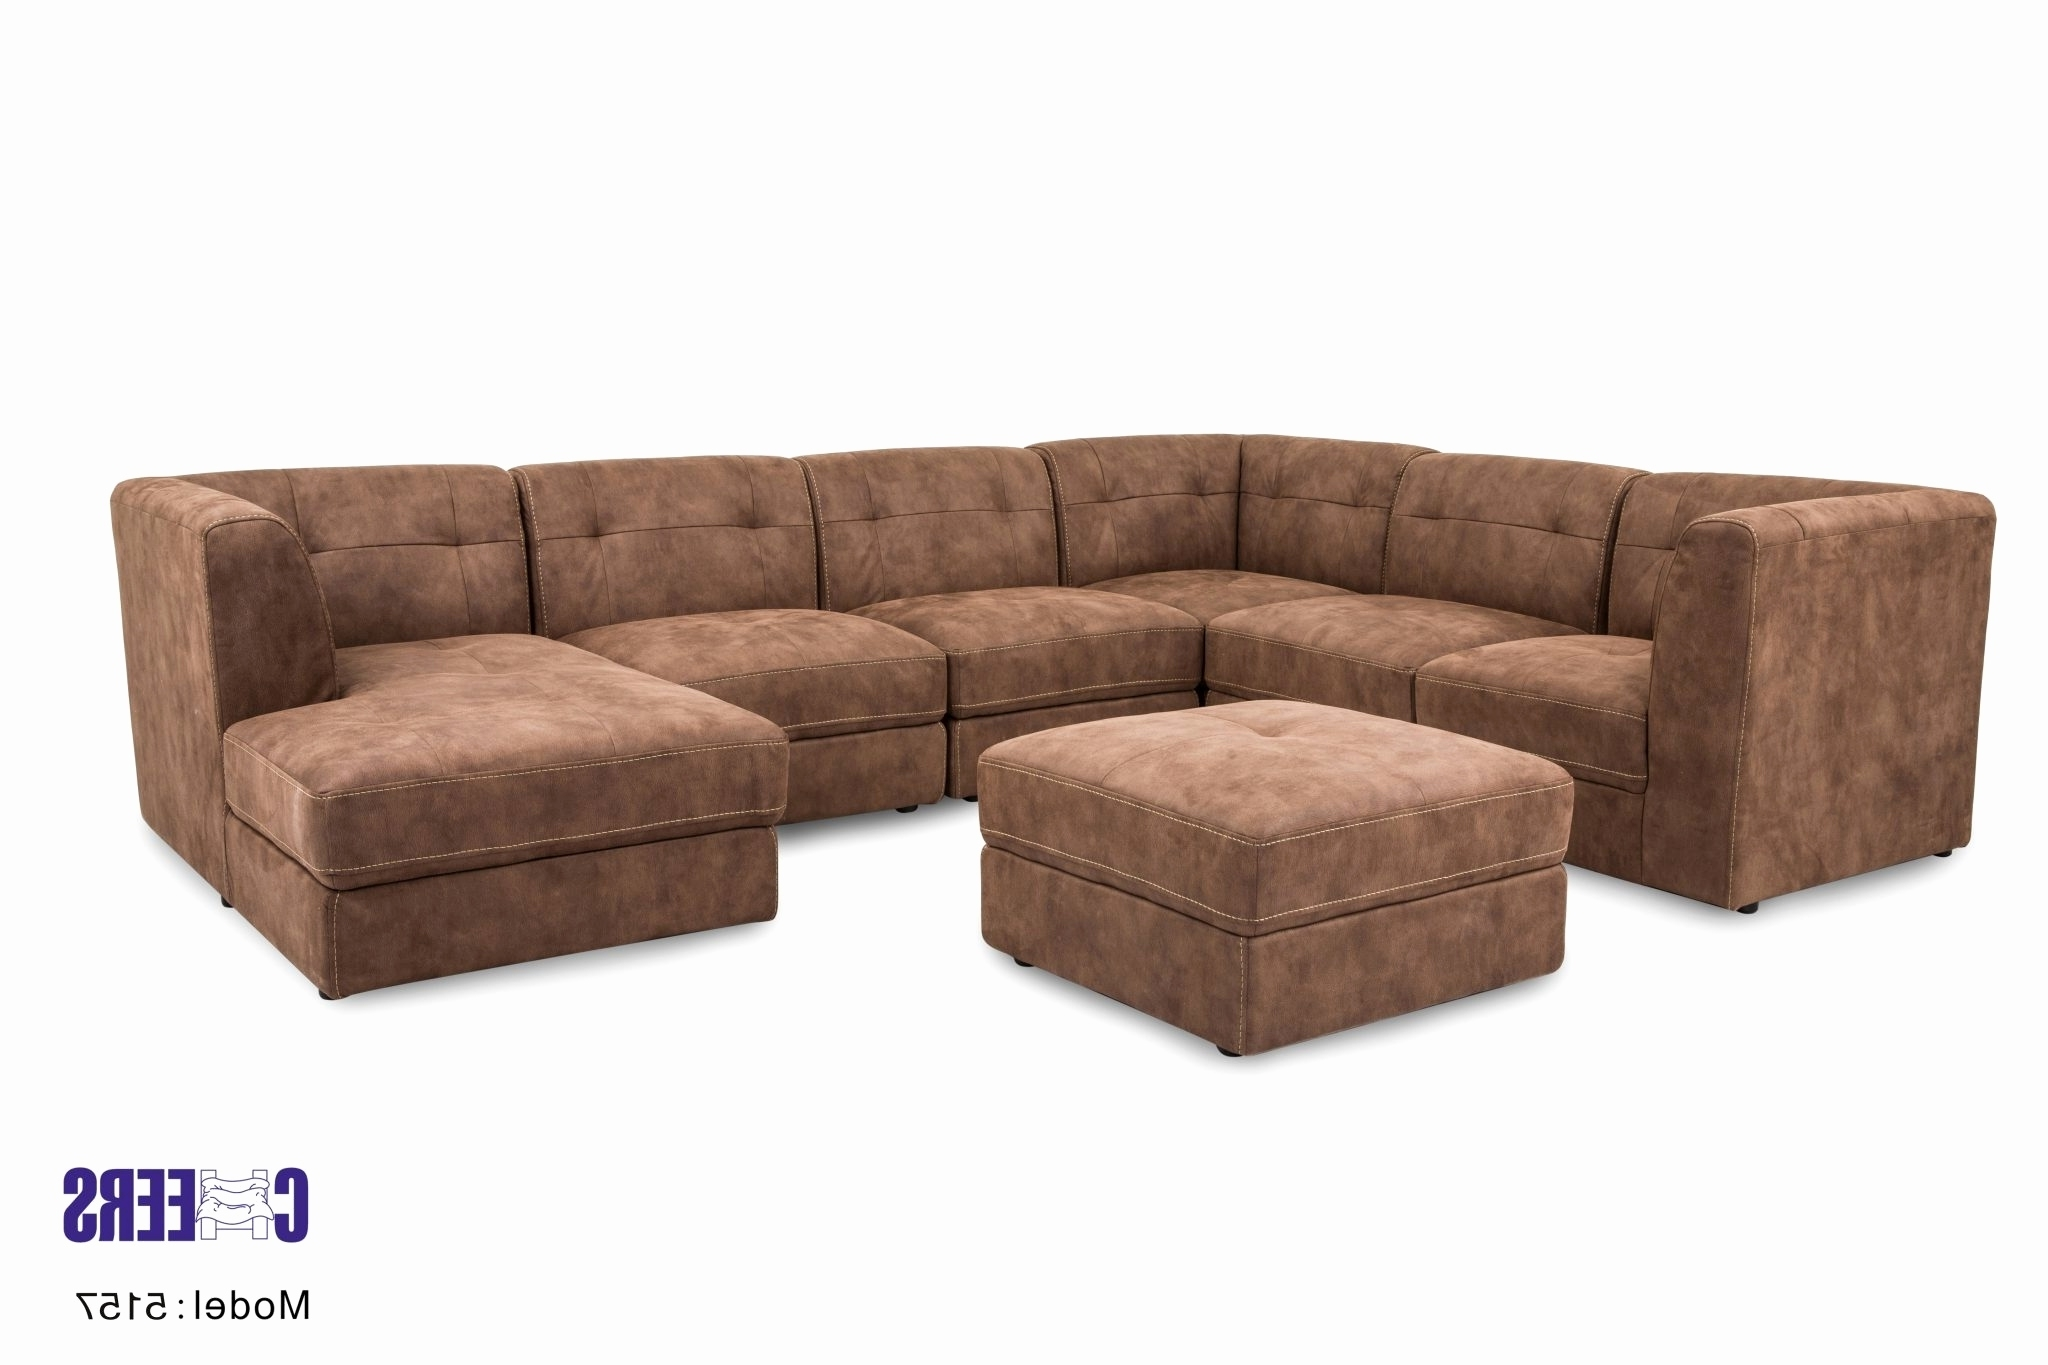 Favorite Luxury 6 Piece Sectional Sofa 2018 – Couches Ideas In Sam Levitz Sectional Sofas (View 8 of 20)